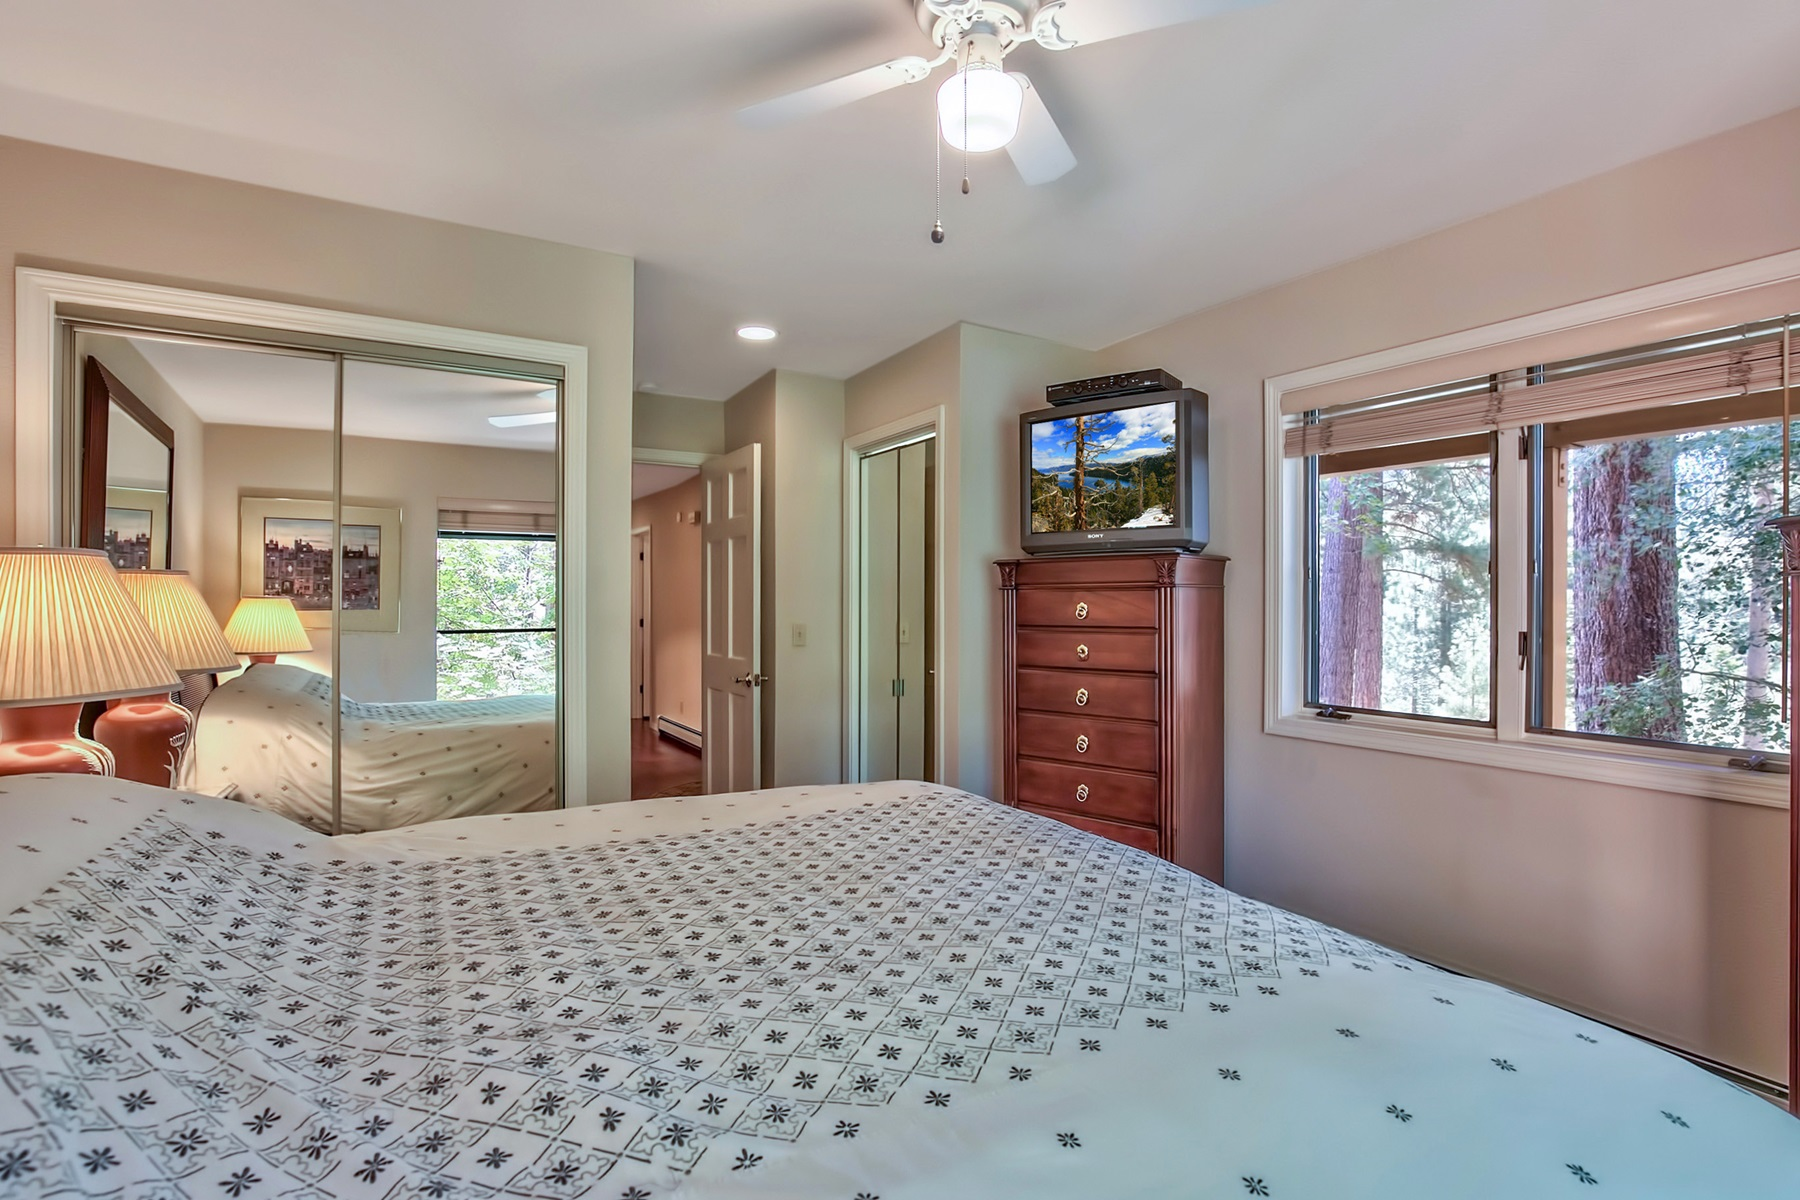 Additional photo for property listing at 947 Incline Way #165  Incline Village, Nevada 89451 United States